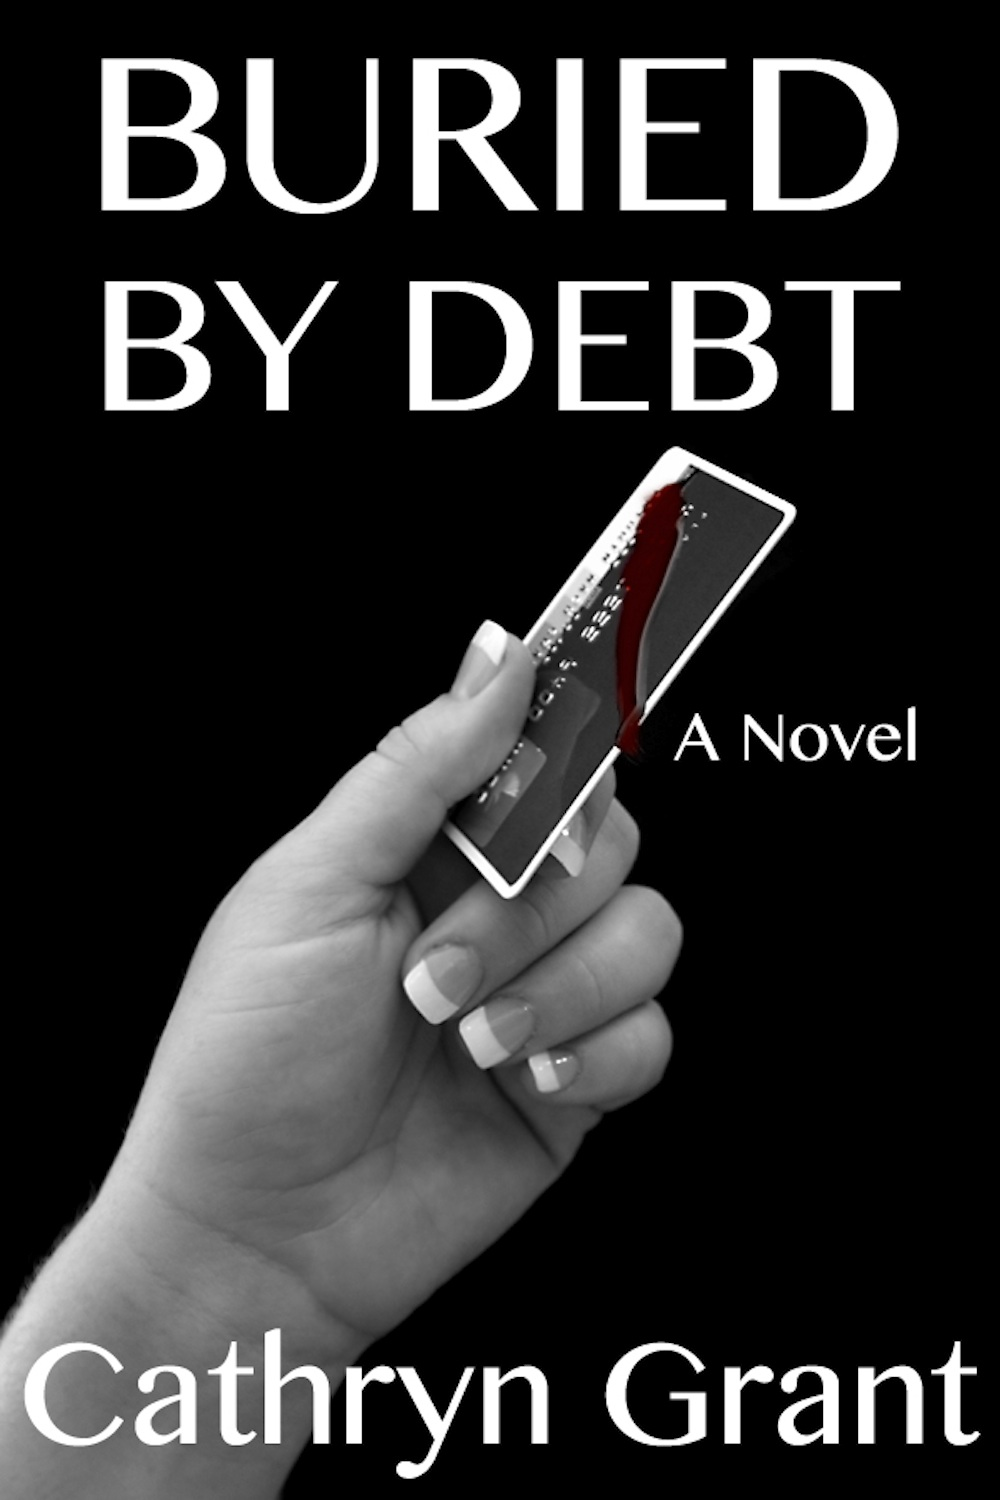 Buried By Debt (A Suburban Noir novel)